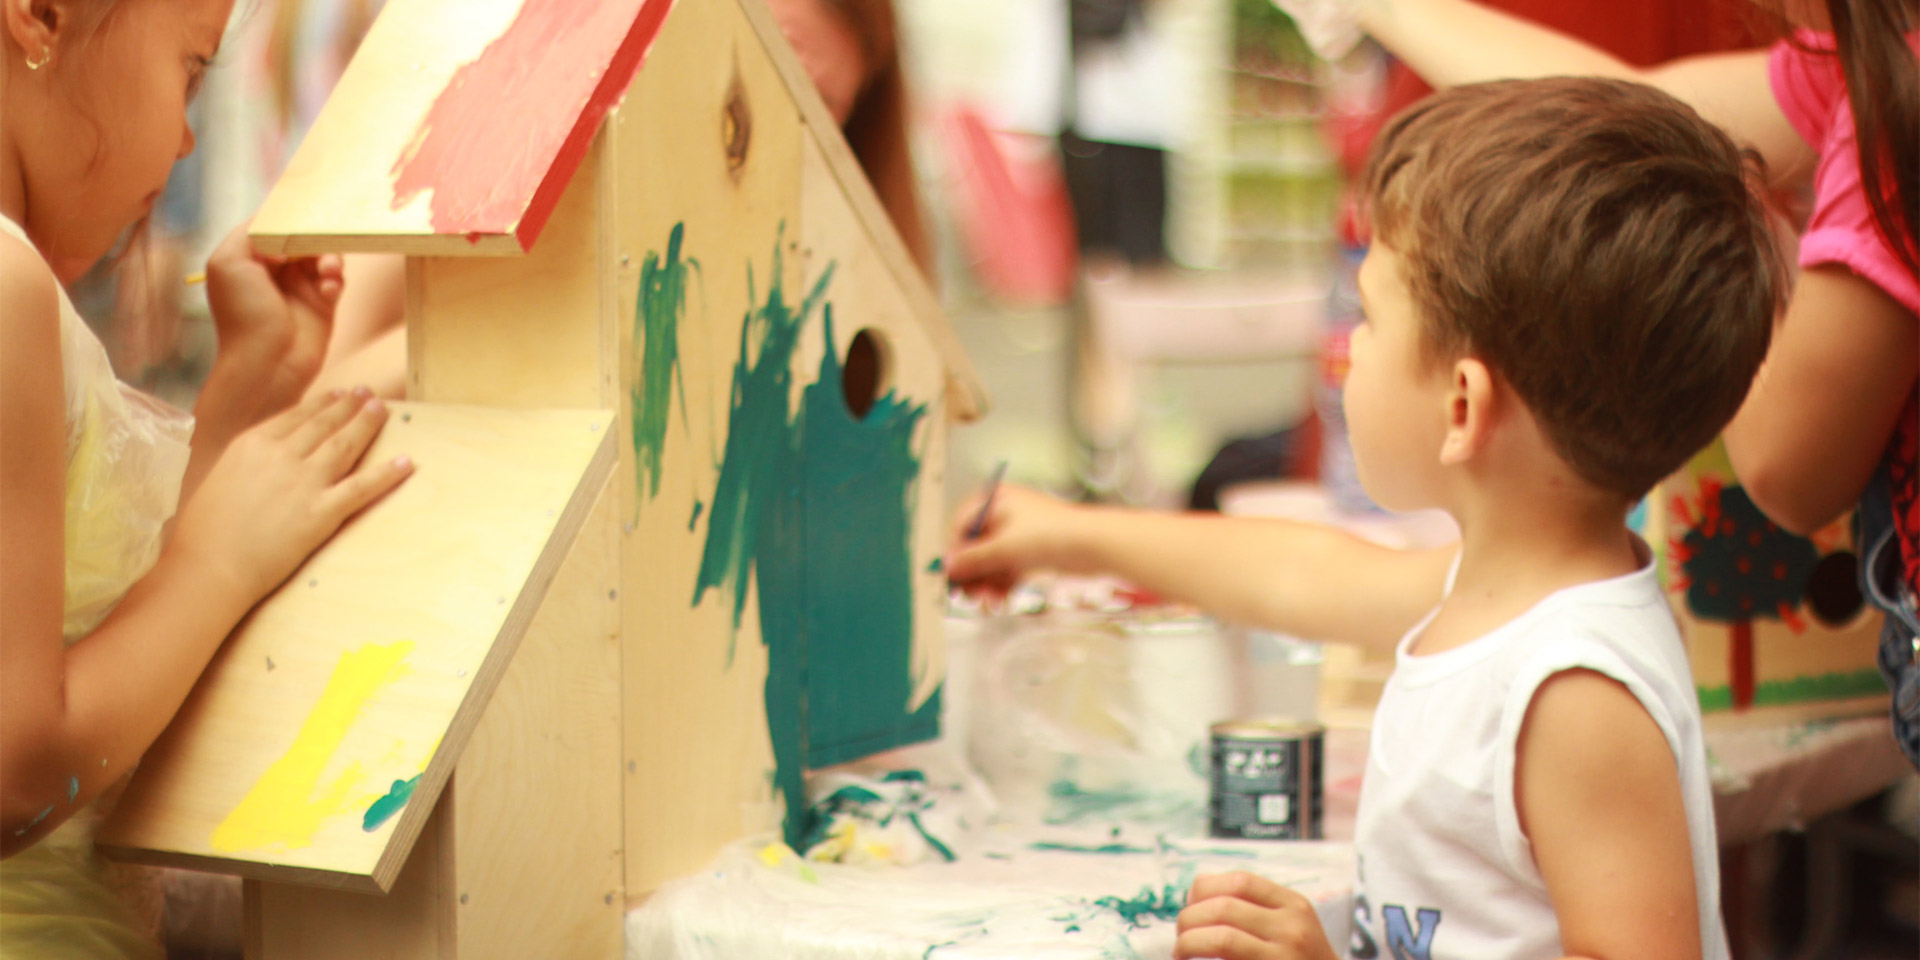 Kids painting a a wooden house.